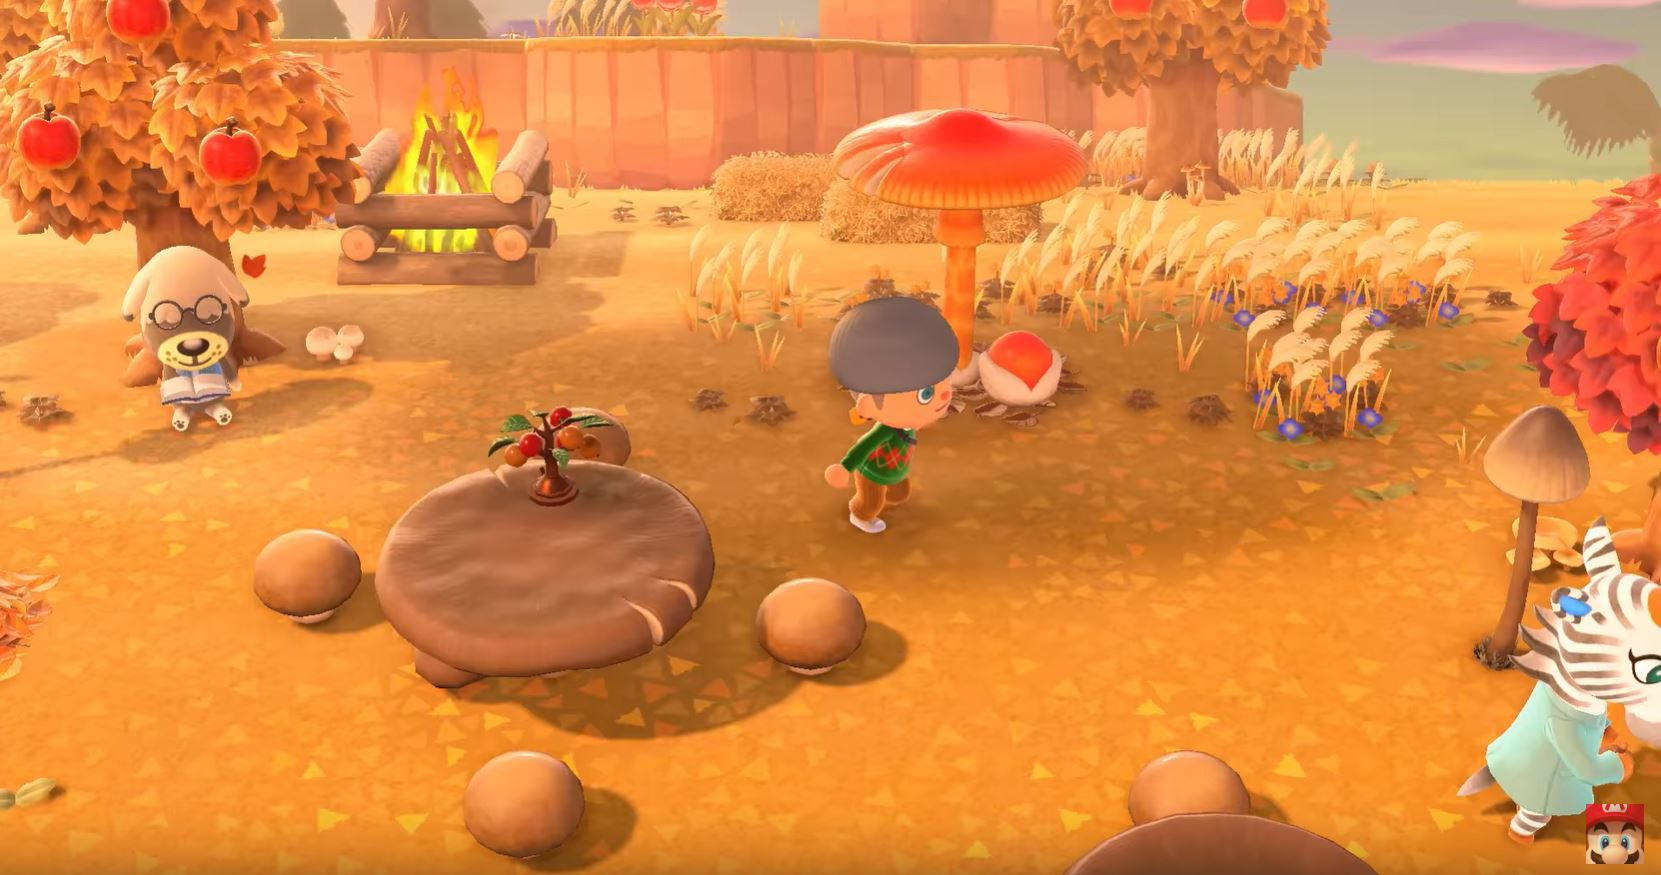 New Deep Dive on Animal Crossing: New Horizons Game from Nintendo